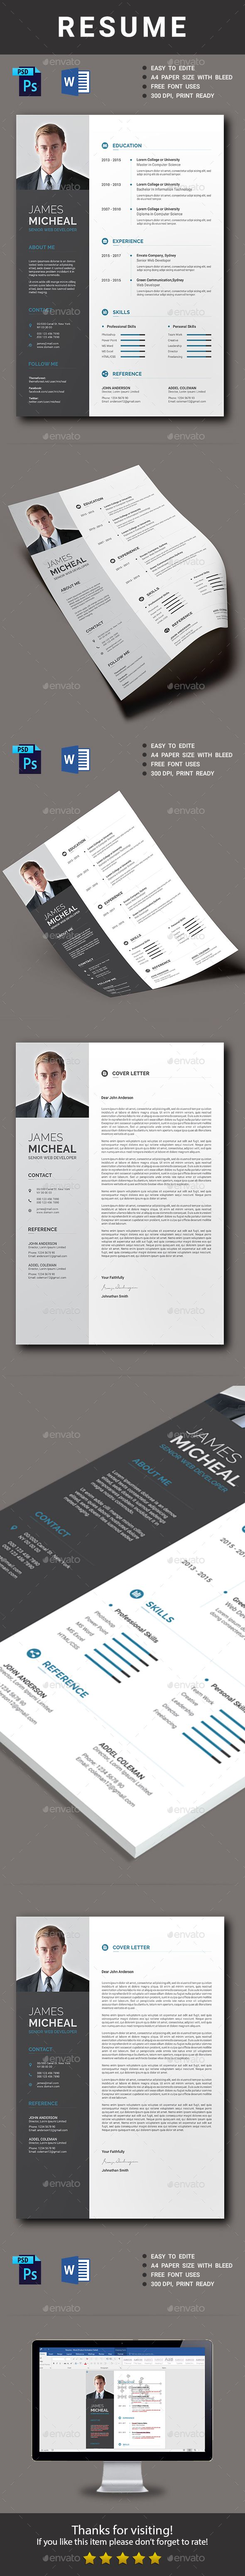 how to update resume%0A  Resume  Resumes Stationery Download here  https   graphicriver net